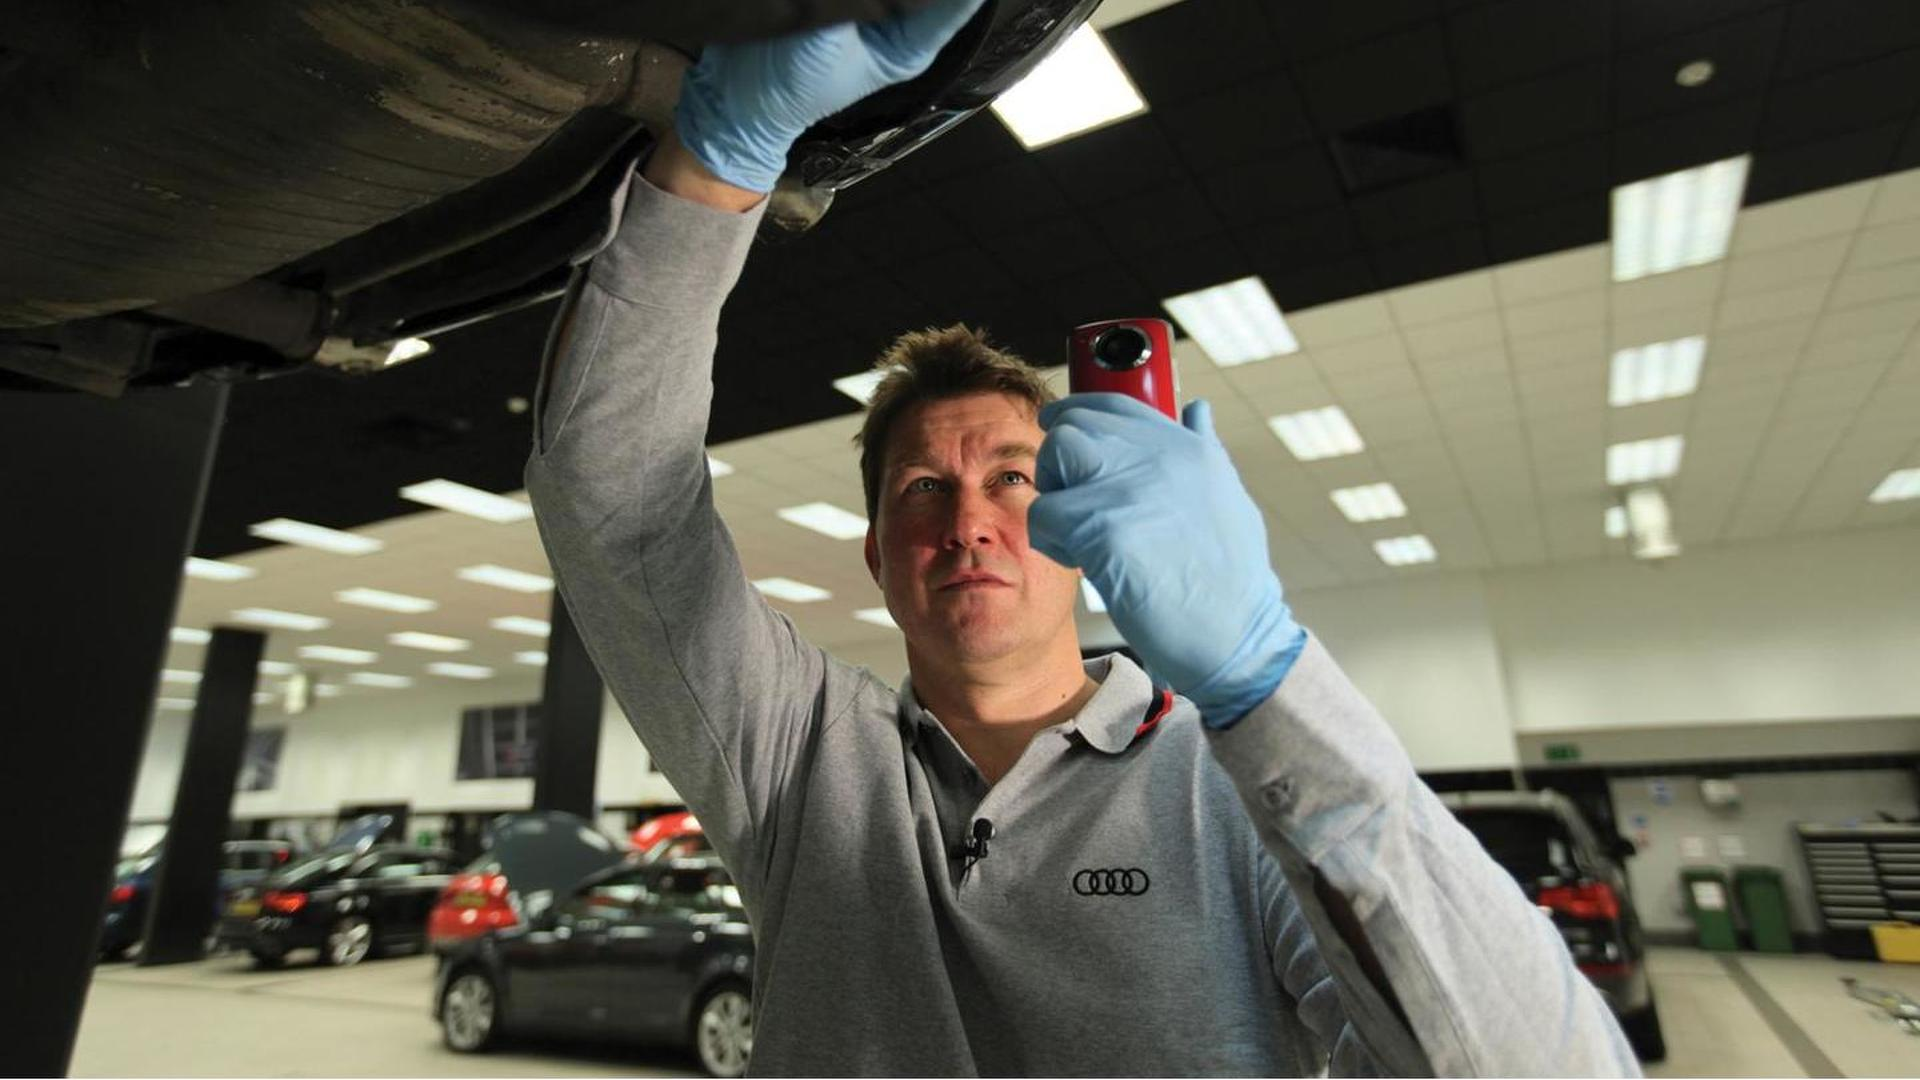 Audi Cam introduced in UK for filming inspections